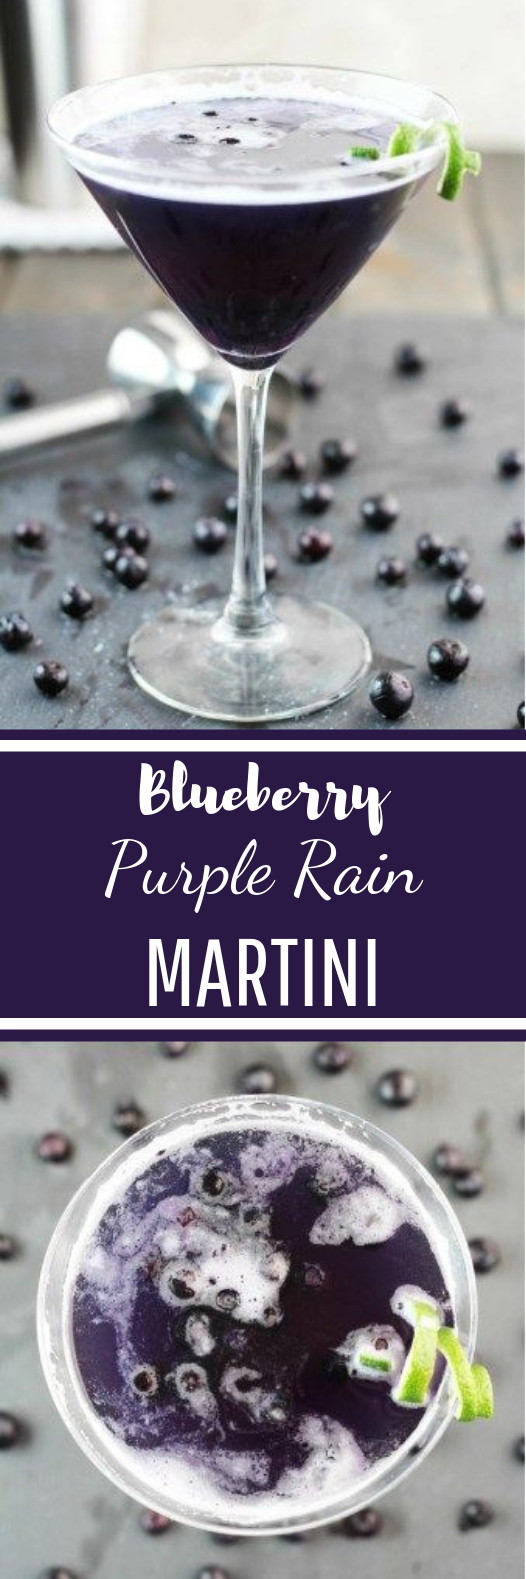 Blueberry Purple Rain Martini #fruit #cocktails